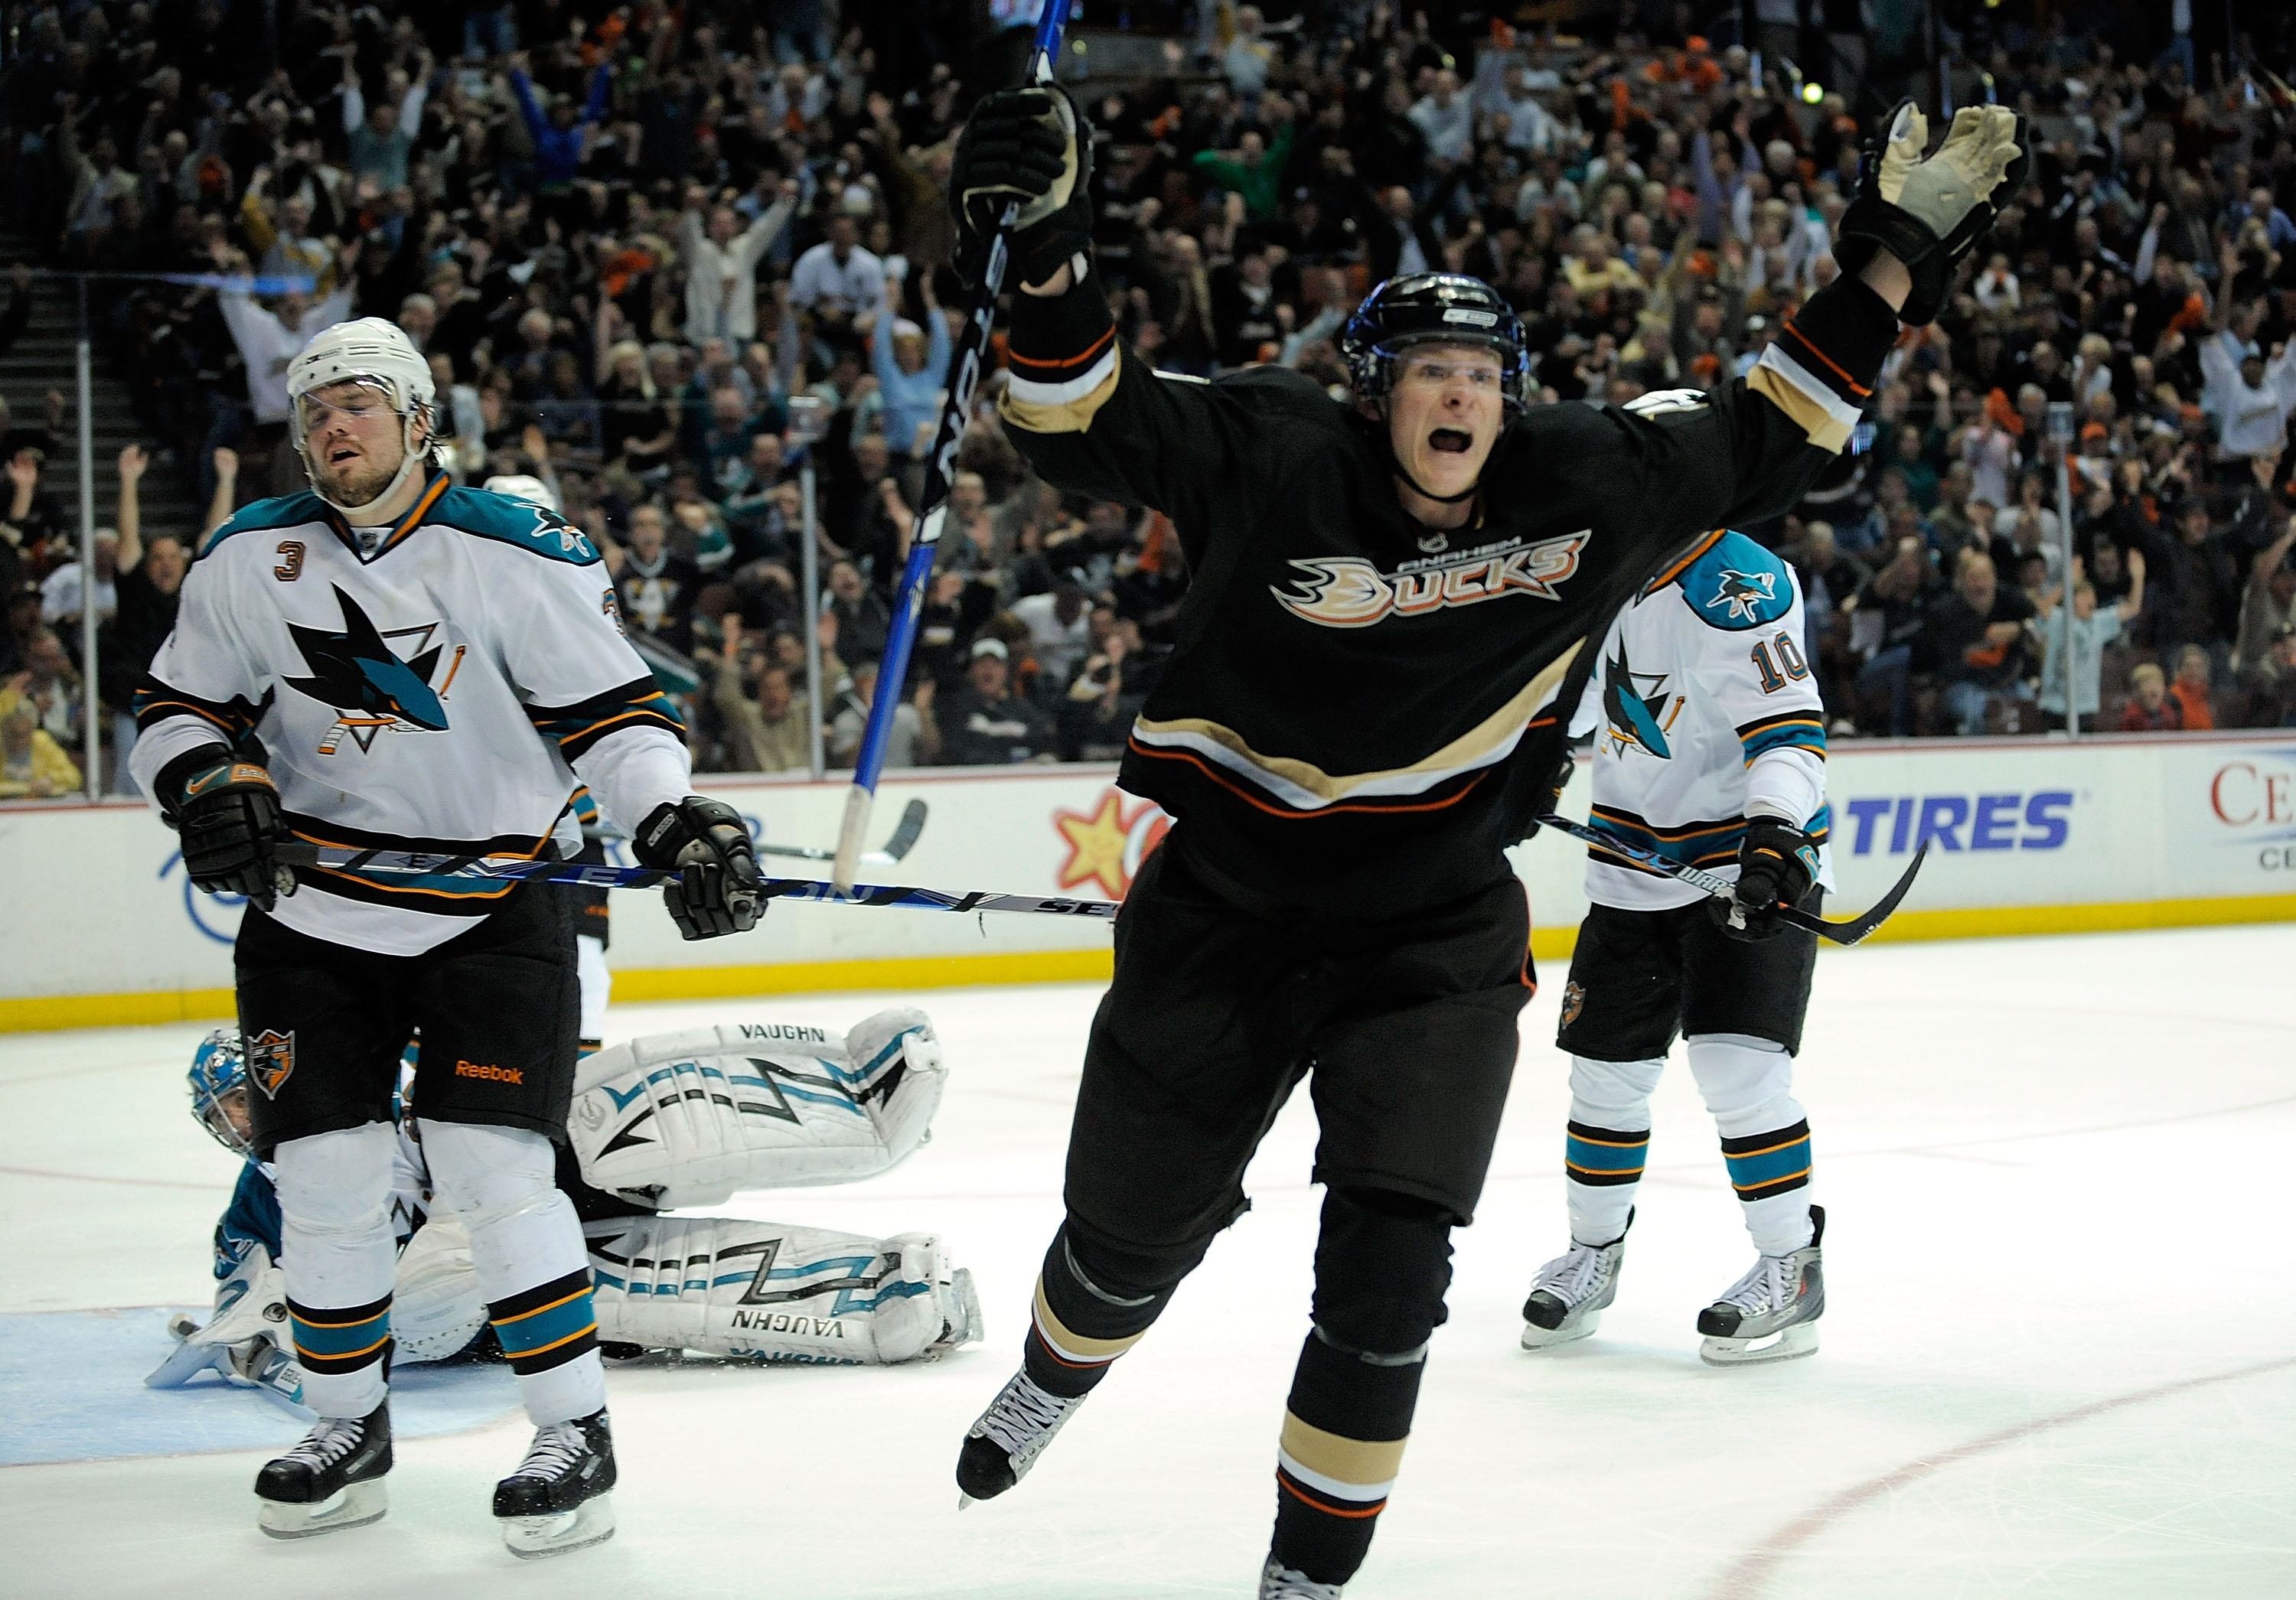 ANAHEIM, CA - APRIL 23:   Douglas Murray #3 of the San Jose Sharks reacts with closed eyes as Corey Perry #10 of the Anaheim Ducks celebrates his third period goal during Game Four of the Western Conference Quarterfinal Round of the 2009 Stanley Cup Playo